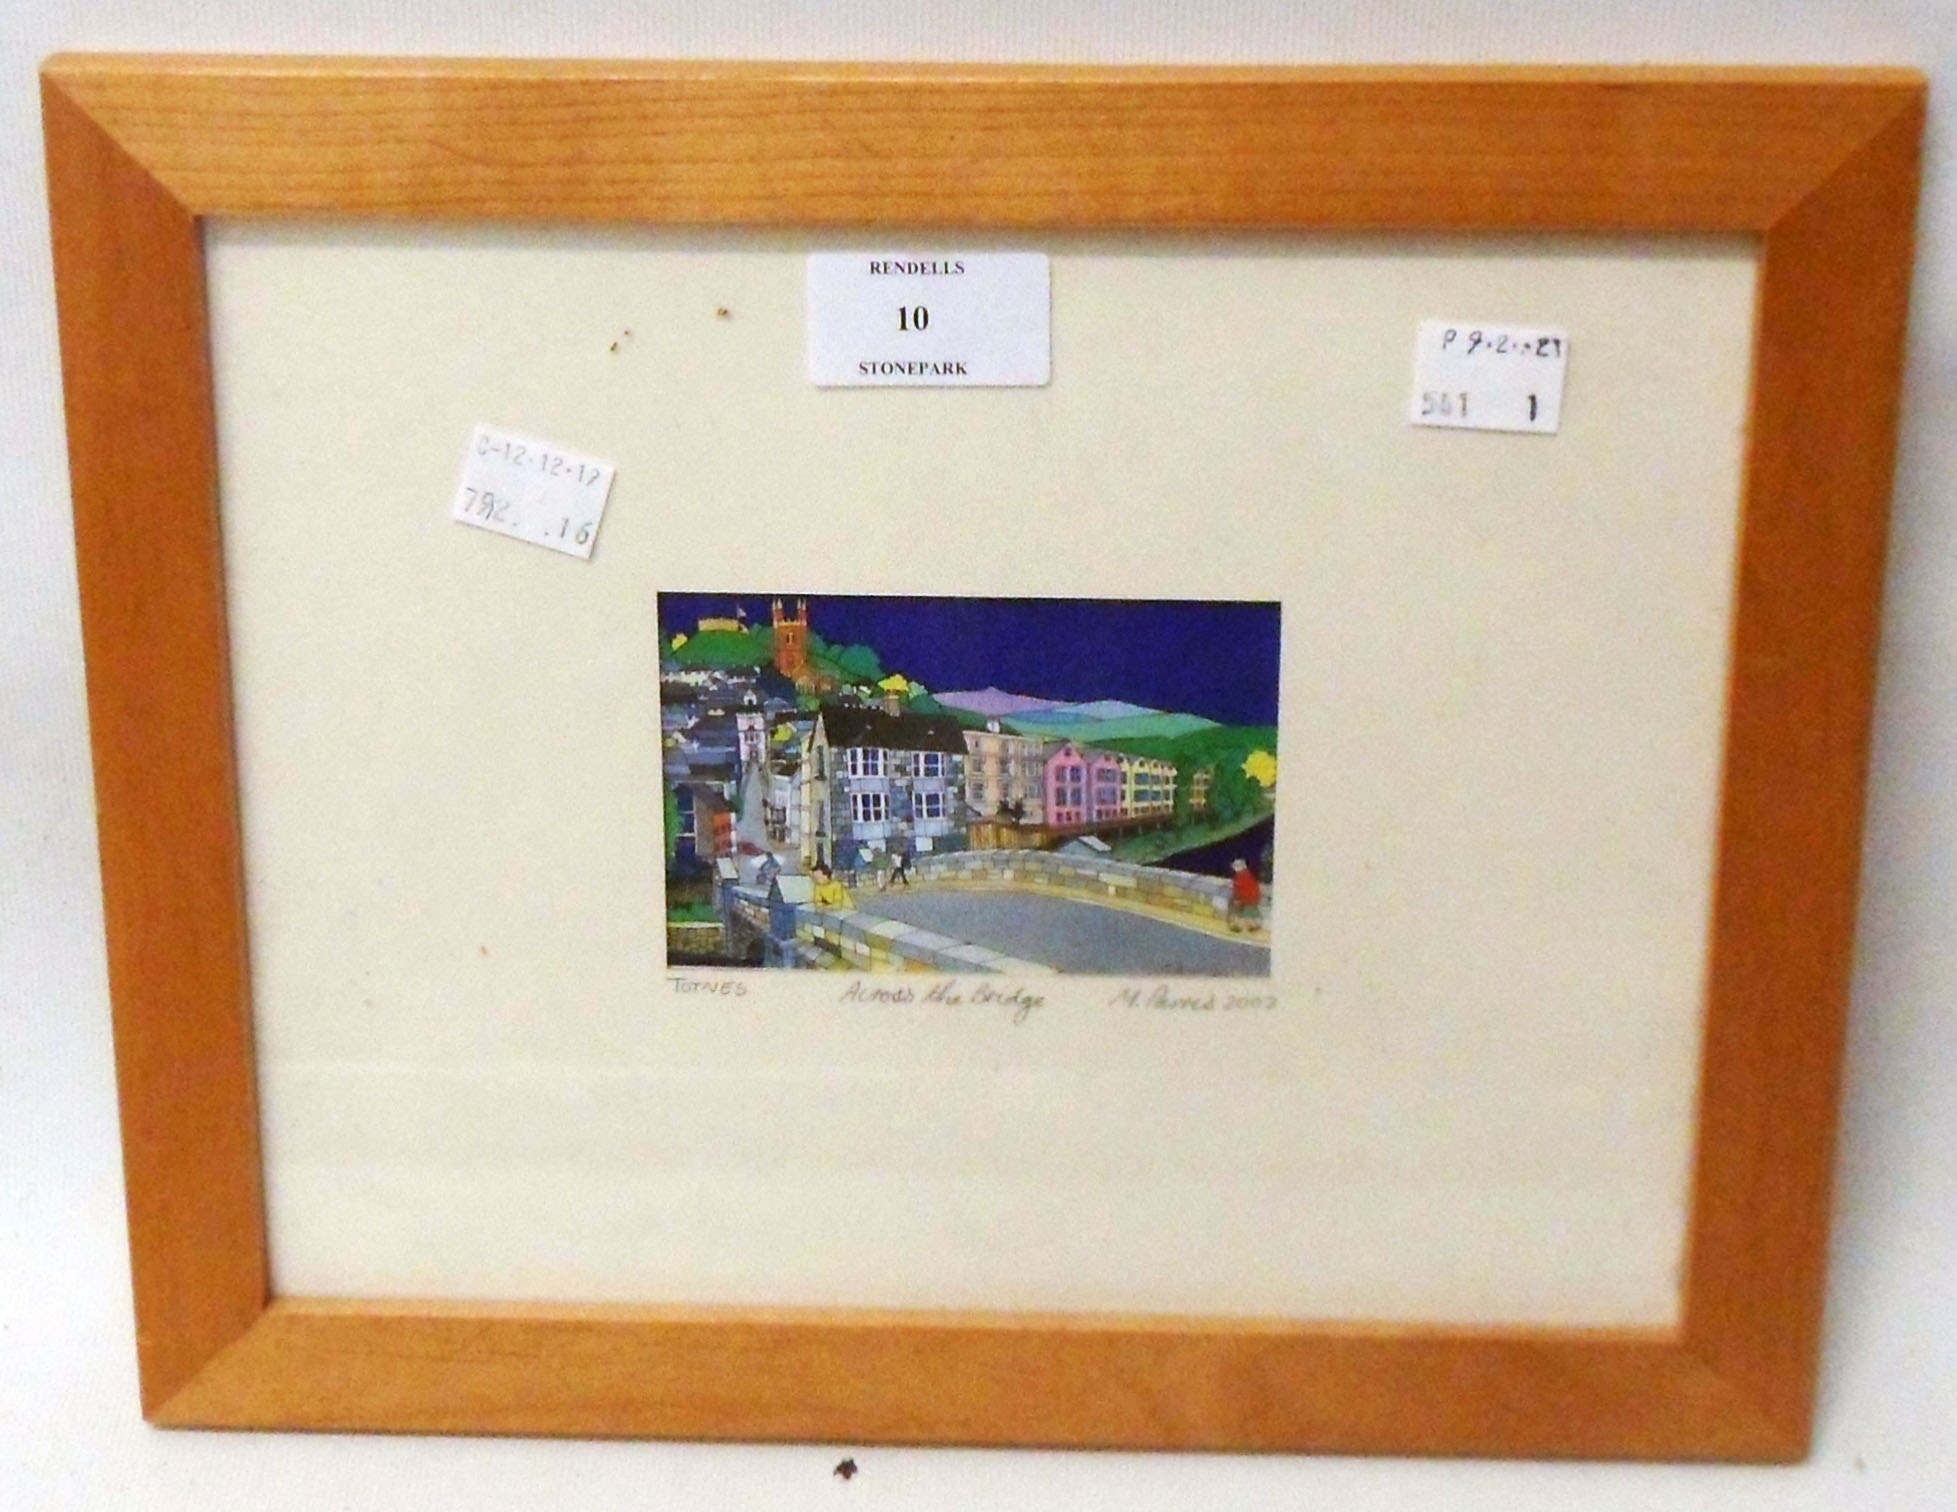 M Parris: a framed miniature polychrome print, entitled Totnes Across the Bridge - signed in